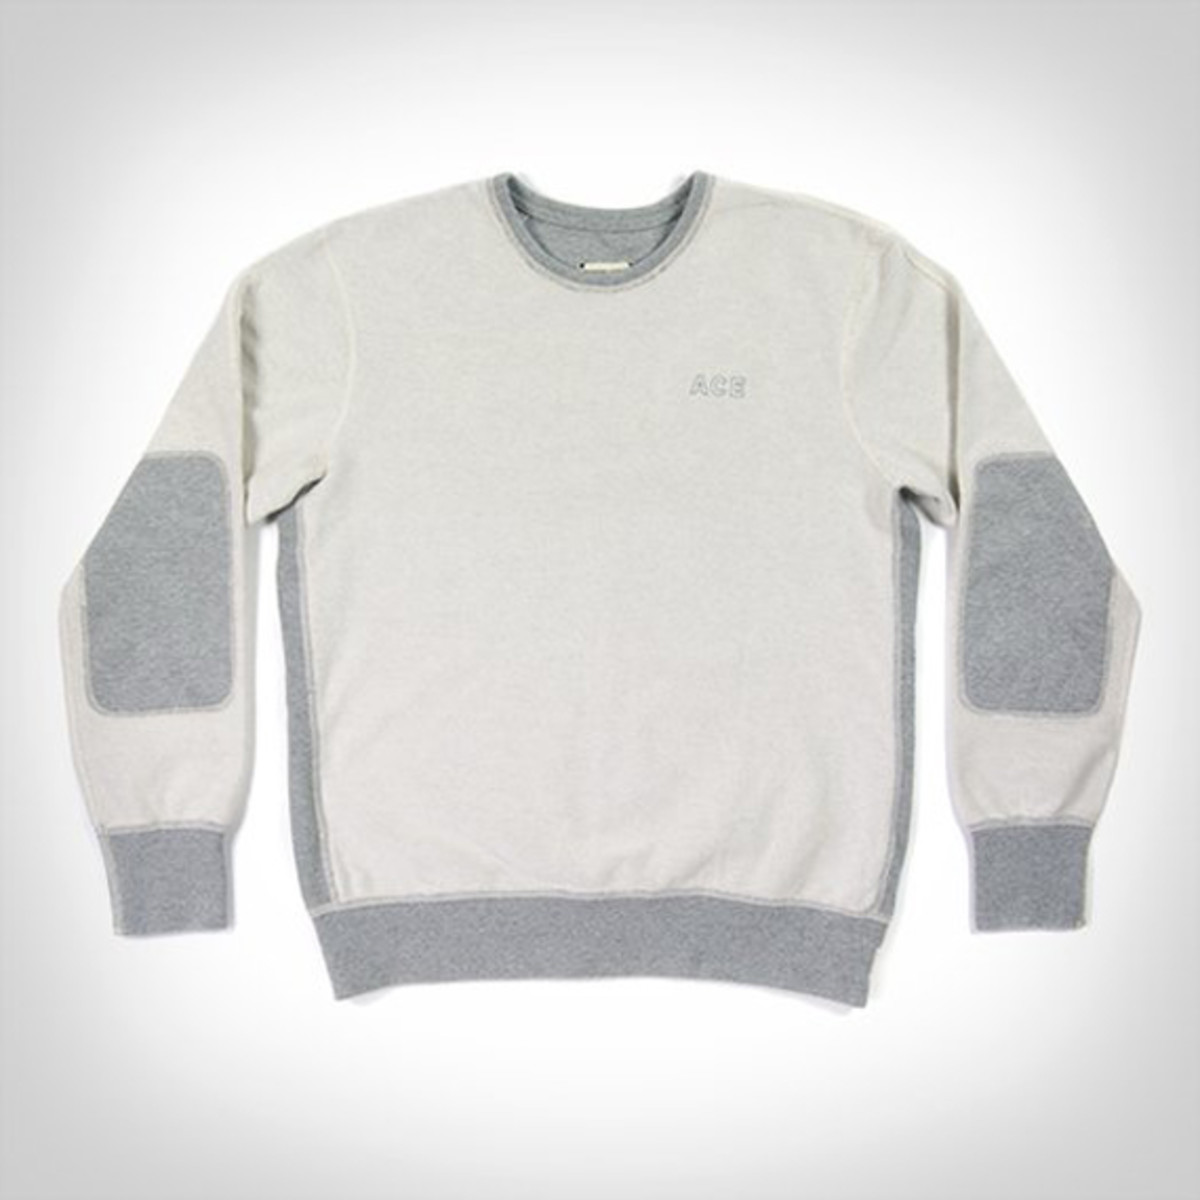 reigning-champ-ace-hotel-fall-2013-collection-09